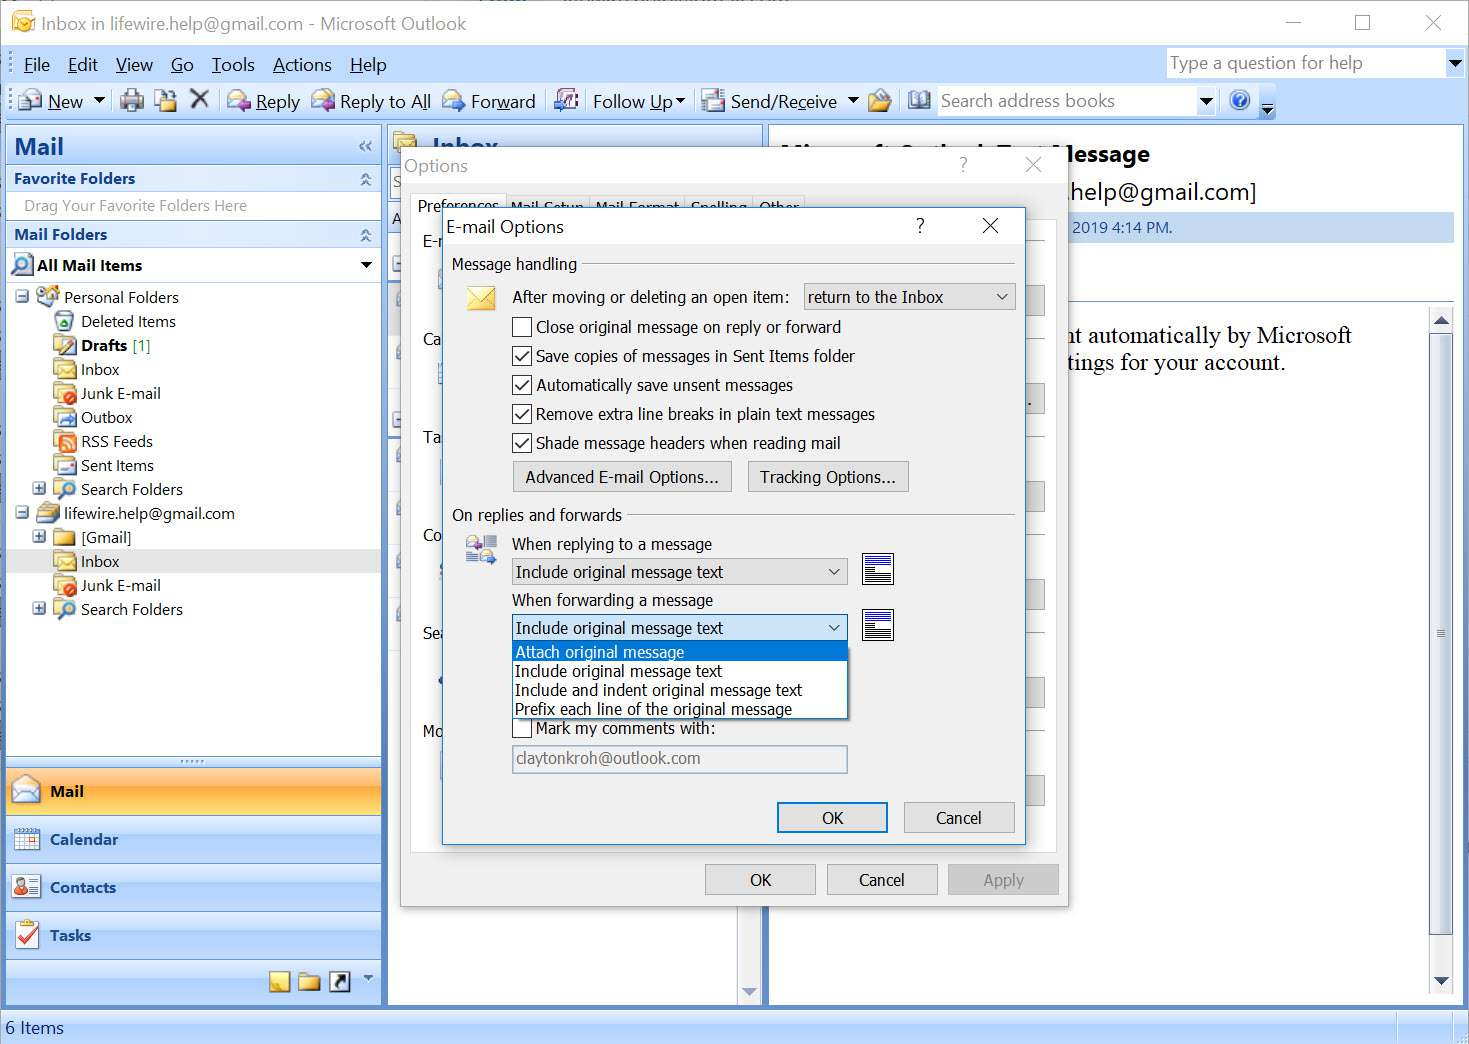 Outlook 2007 E-mail Options window with default dropdown